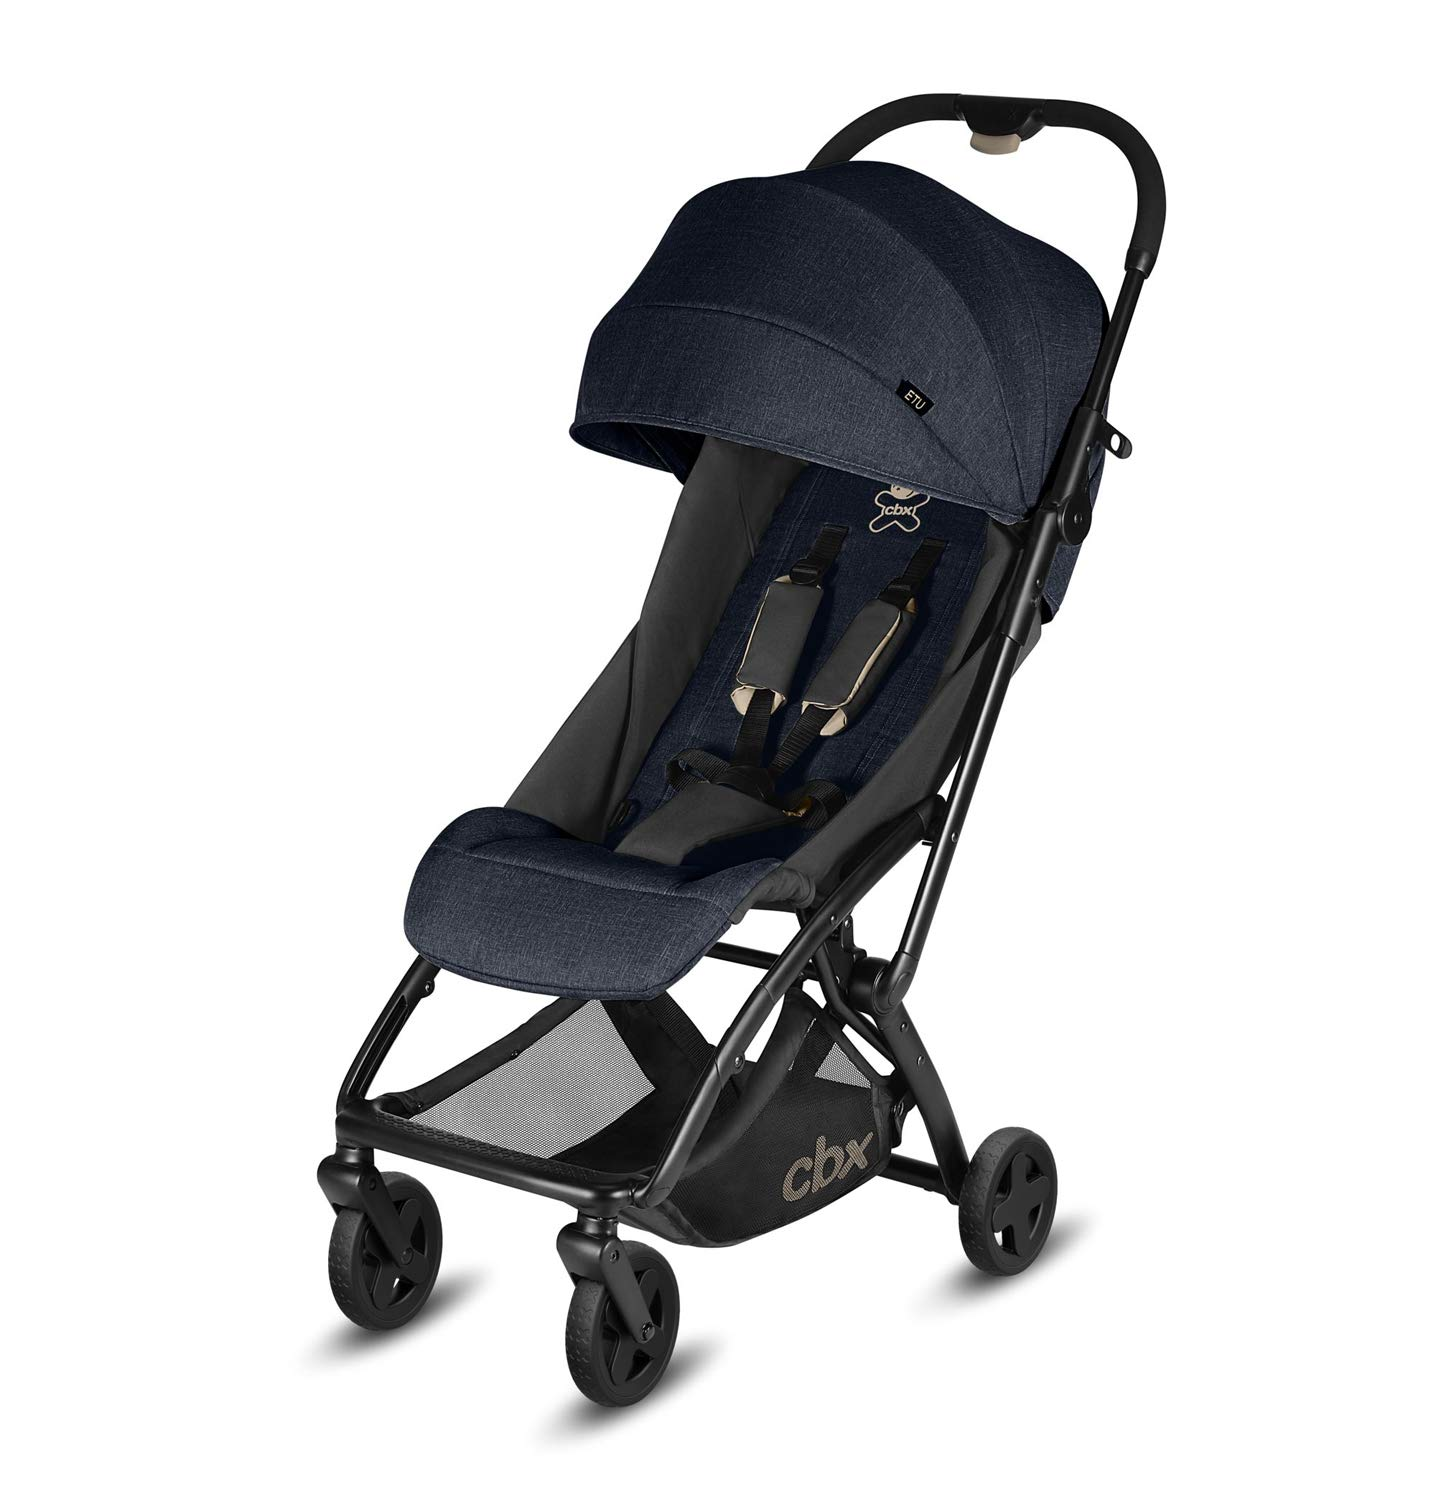 cbx ETU Ultra Compact Pushchair, Incl. Rain Cover and Travel Bag, from Birth to 15 kg, Smoky Anthracite CBX Etui jeans blue Item number: 518002497 Color: jeans blue 1